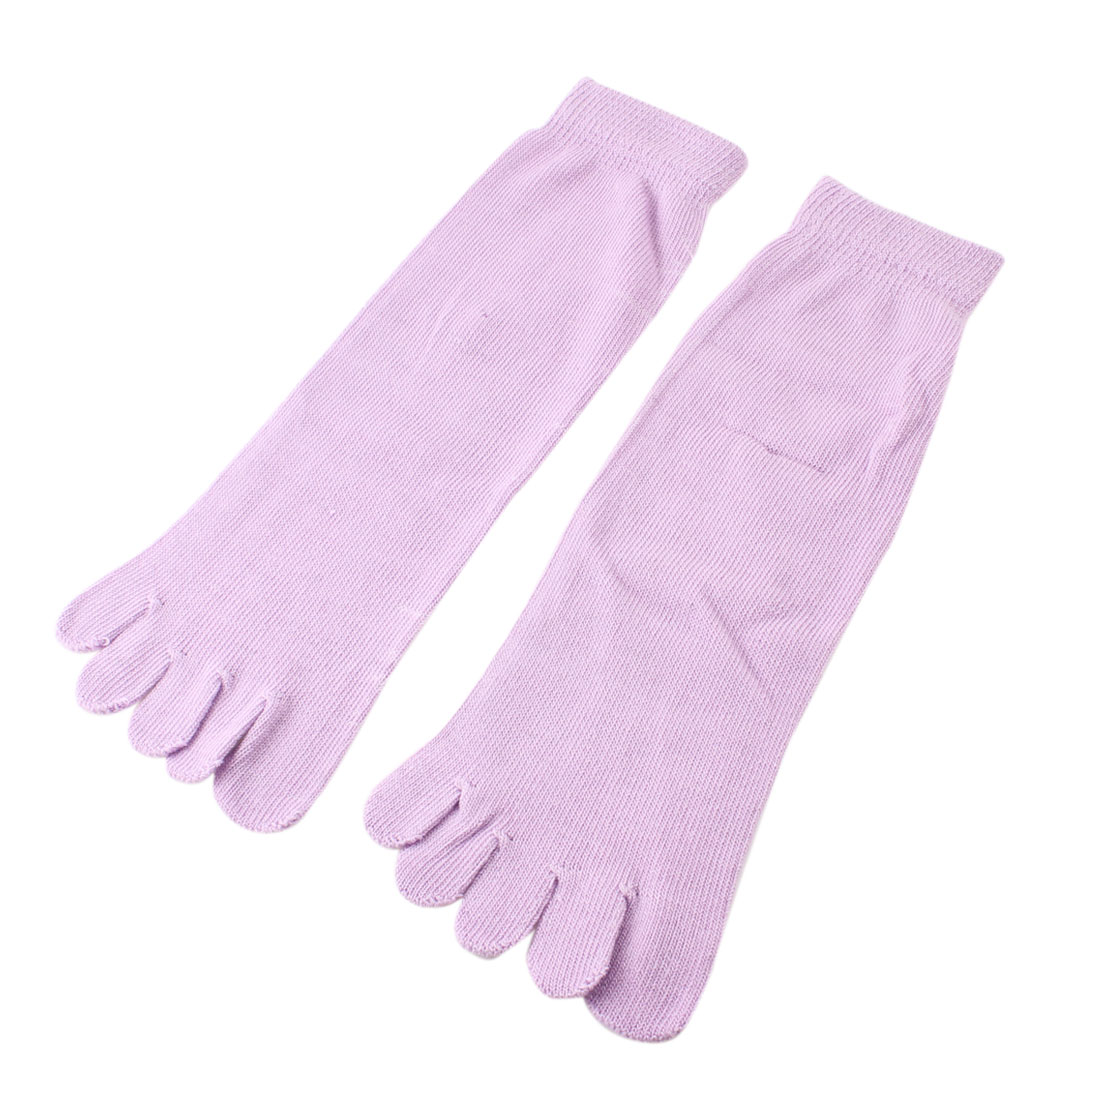 Winter Pale Purple Five Separte Fingers Casual Toe Socks Pair for Ladies Men